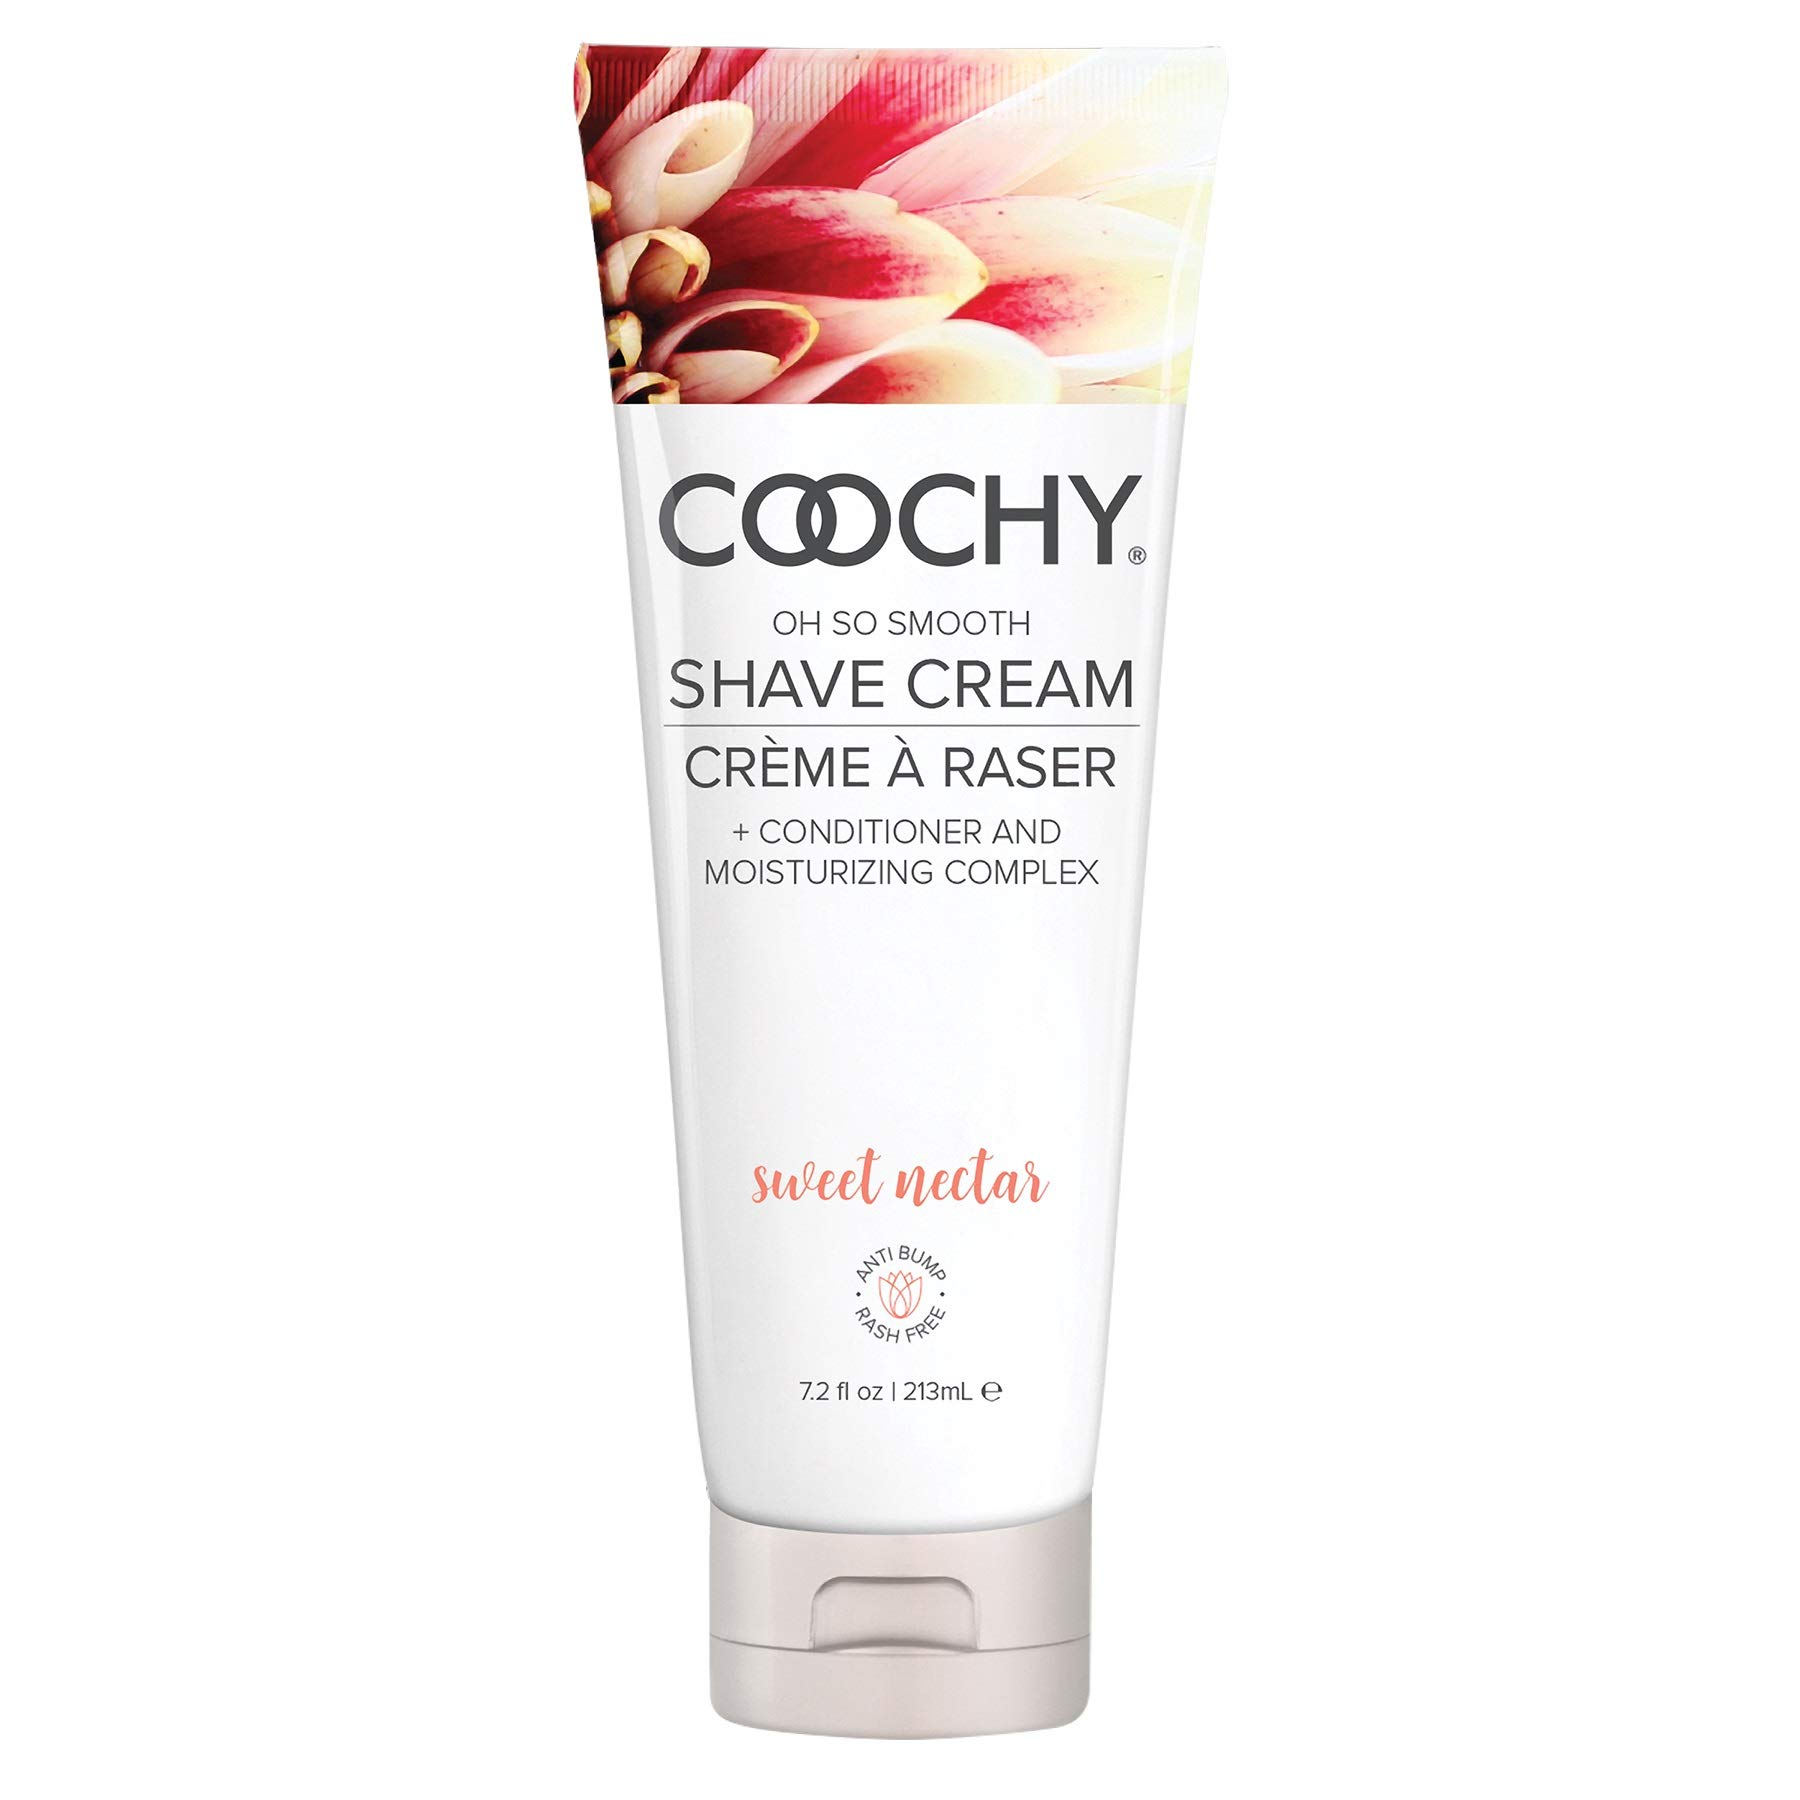 Coochy Shave Cream Sweet Nectar - 7.2 oz by Coochy